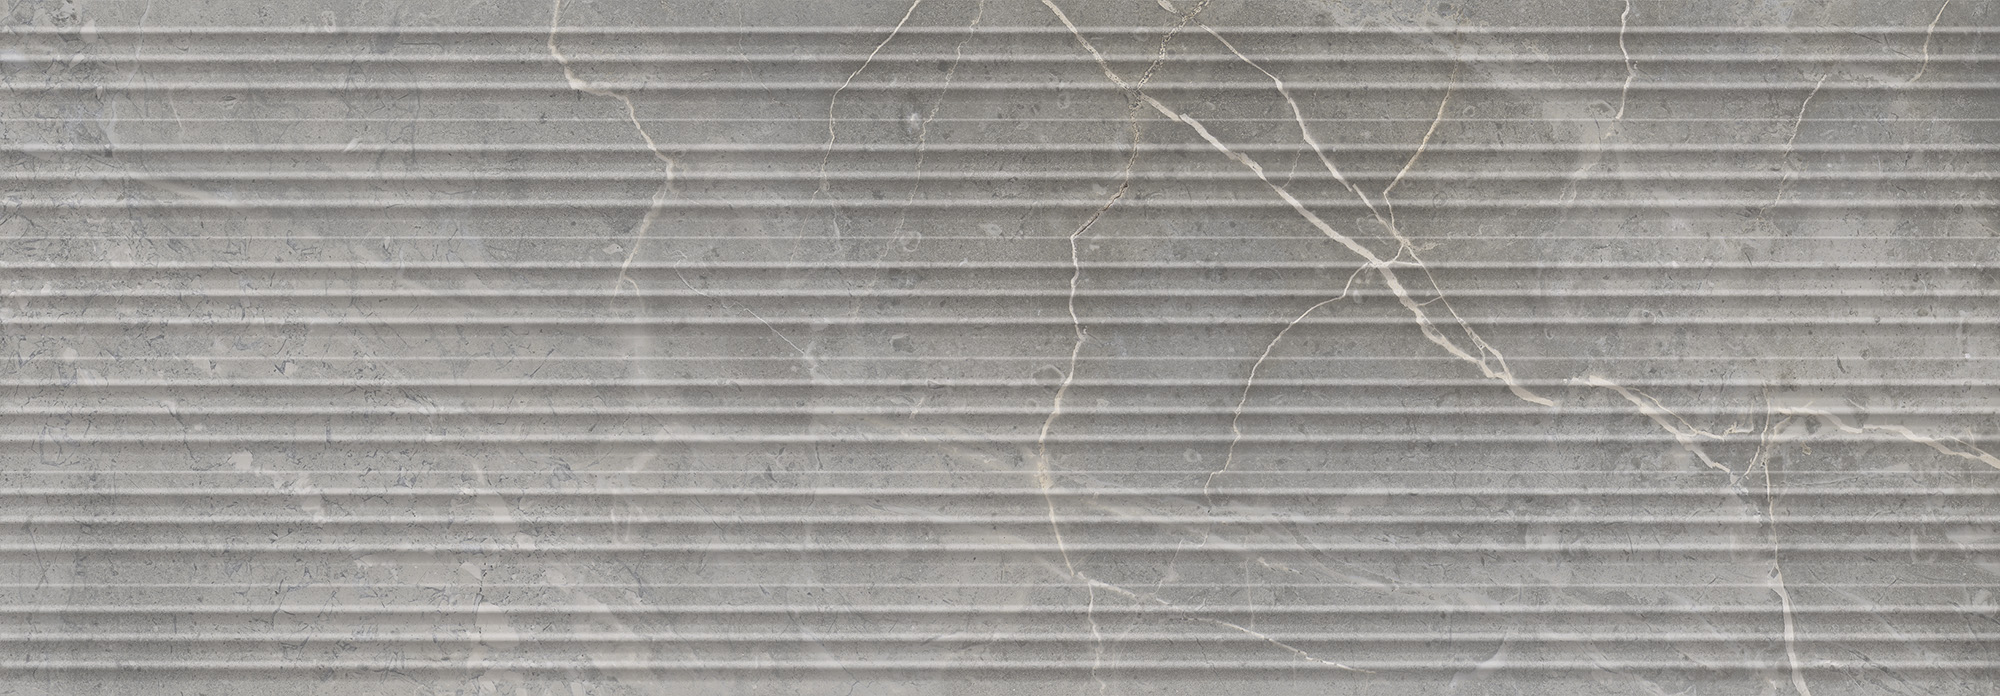 0541585, Marble Boutique Wall, Harmaa, seina